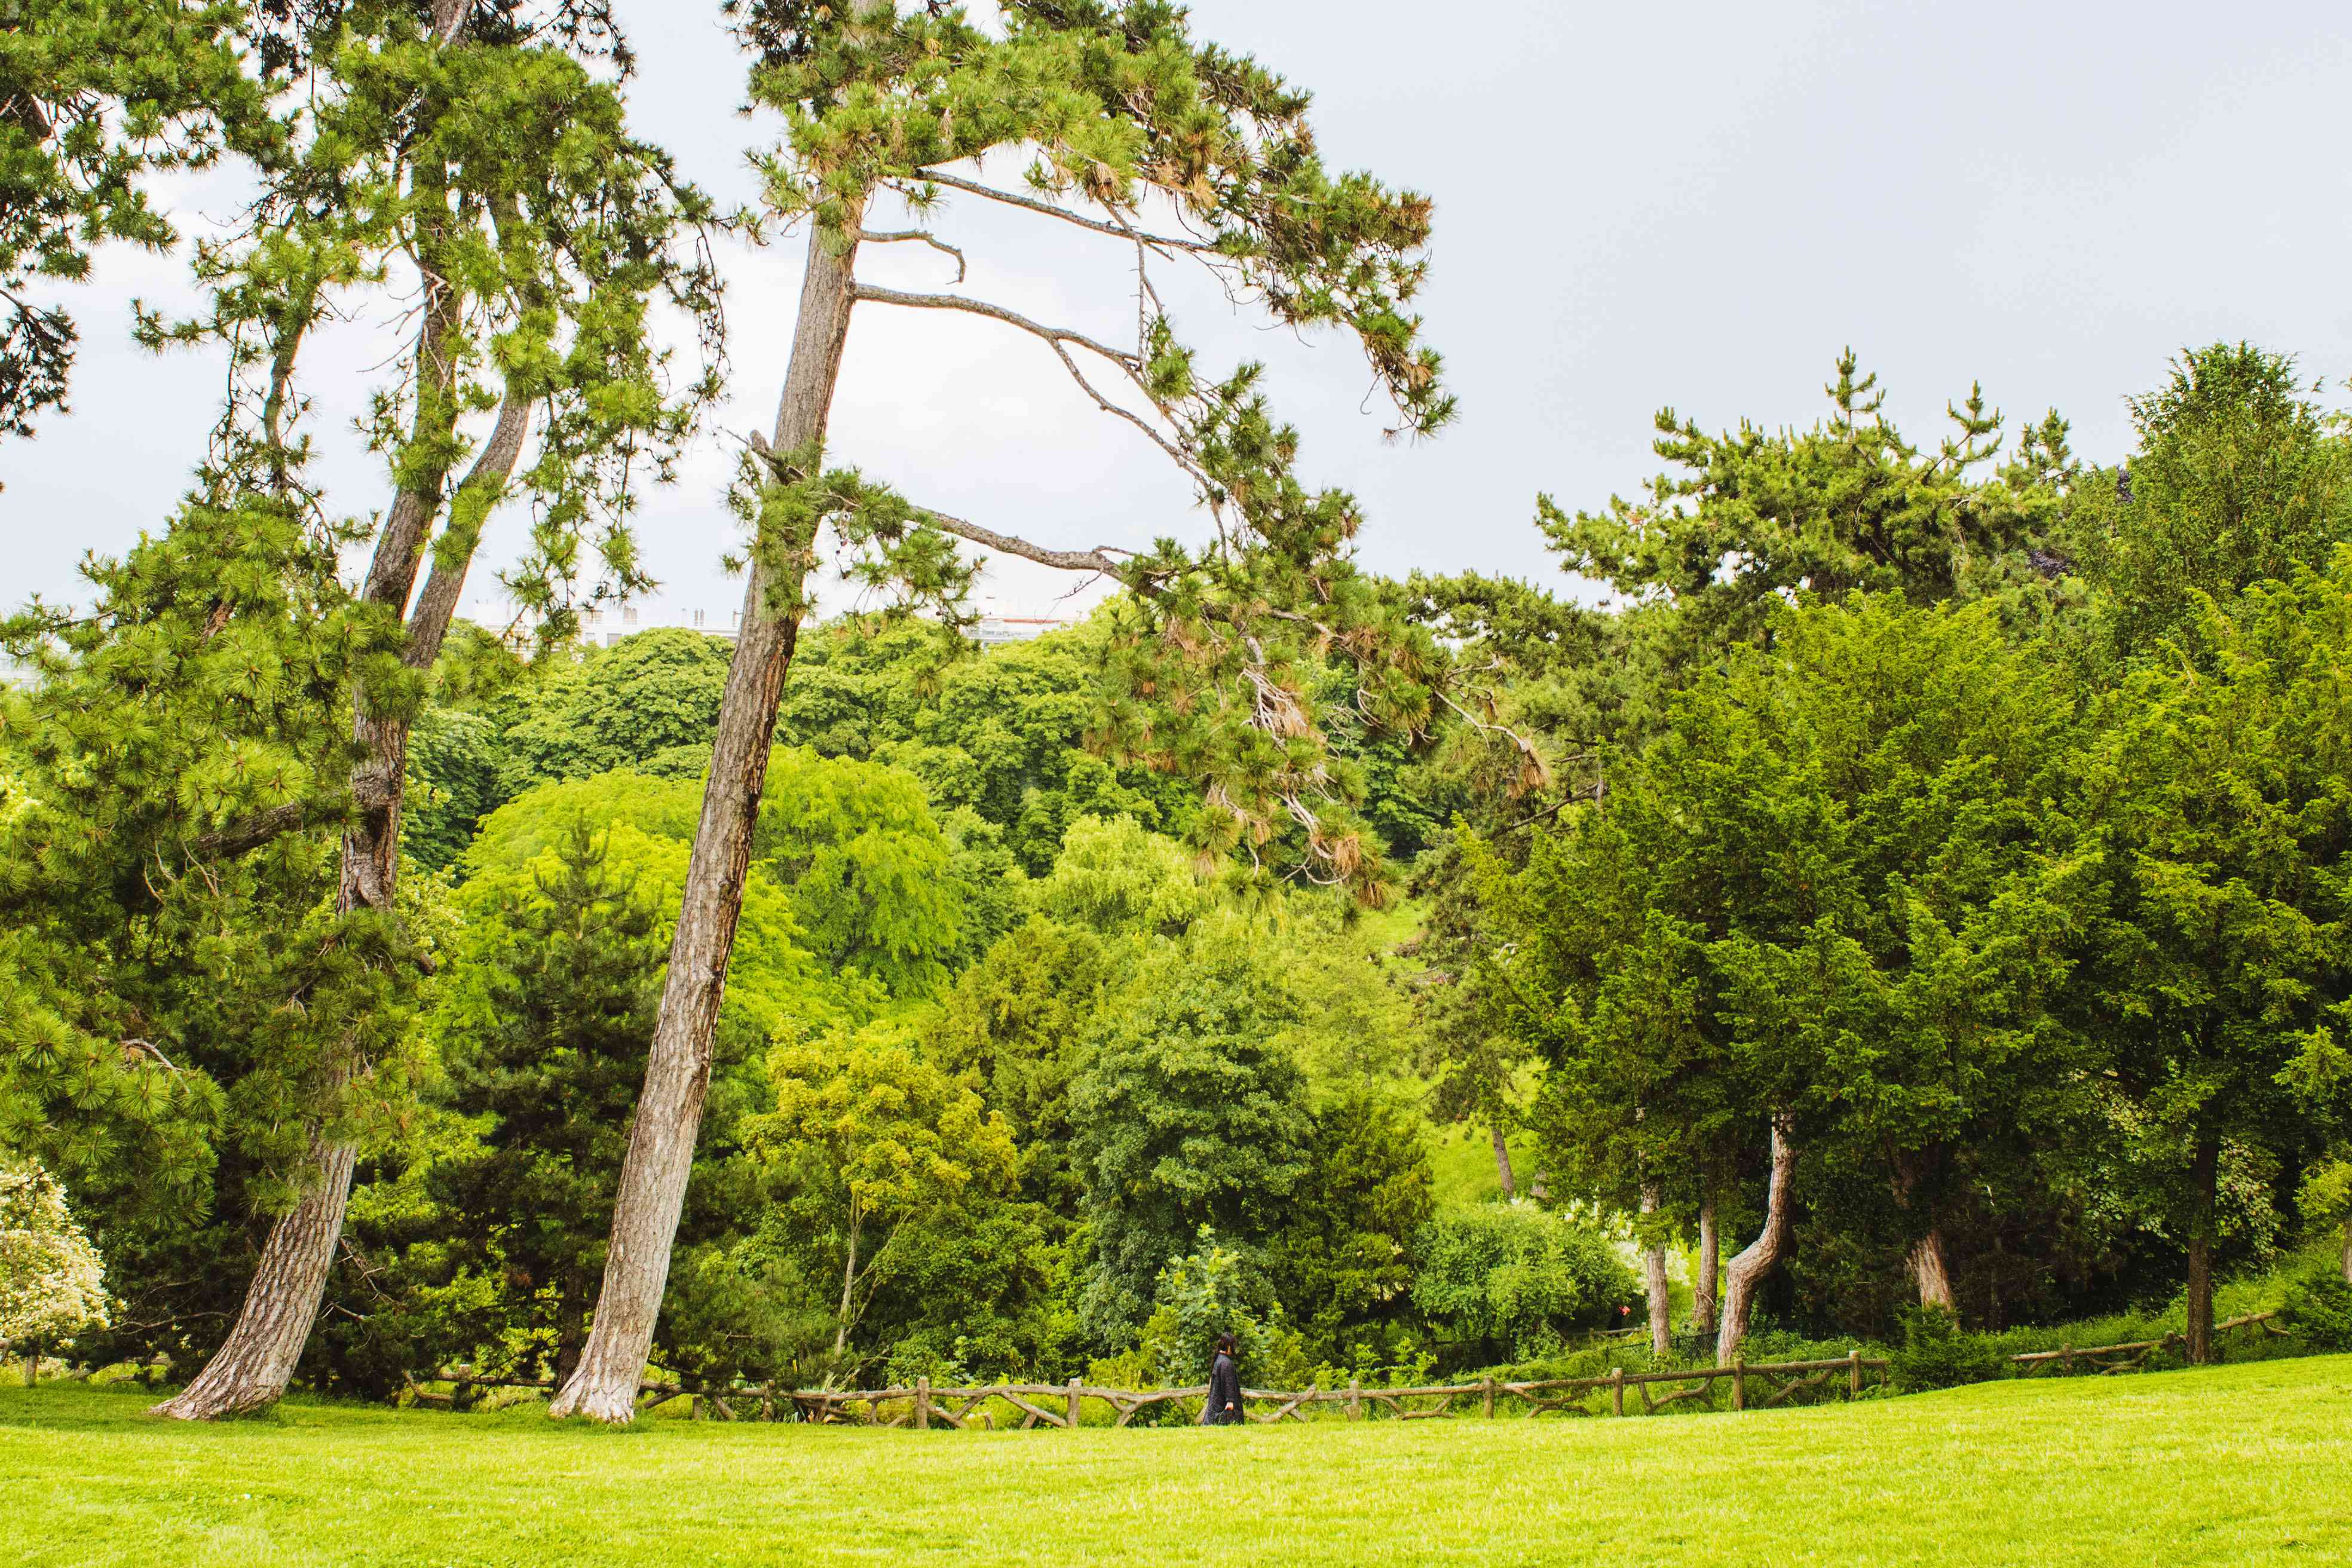 Man walking through greenery in Parc des Buttes Chaumont